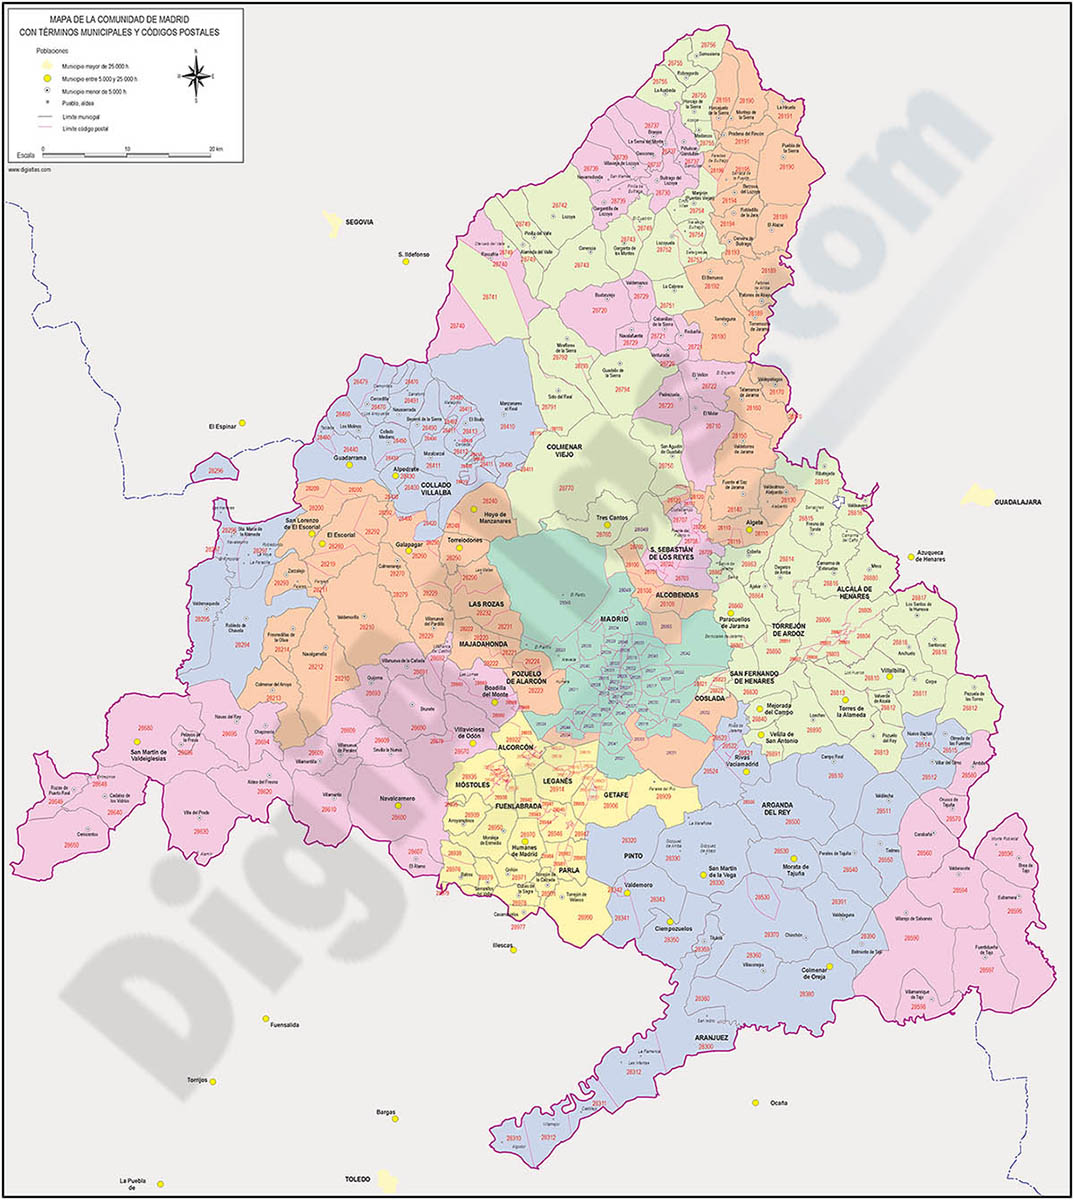 Map of Madrid autonomous community, municipalities and postal codes color